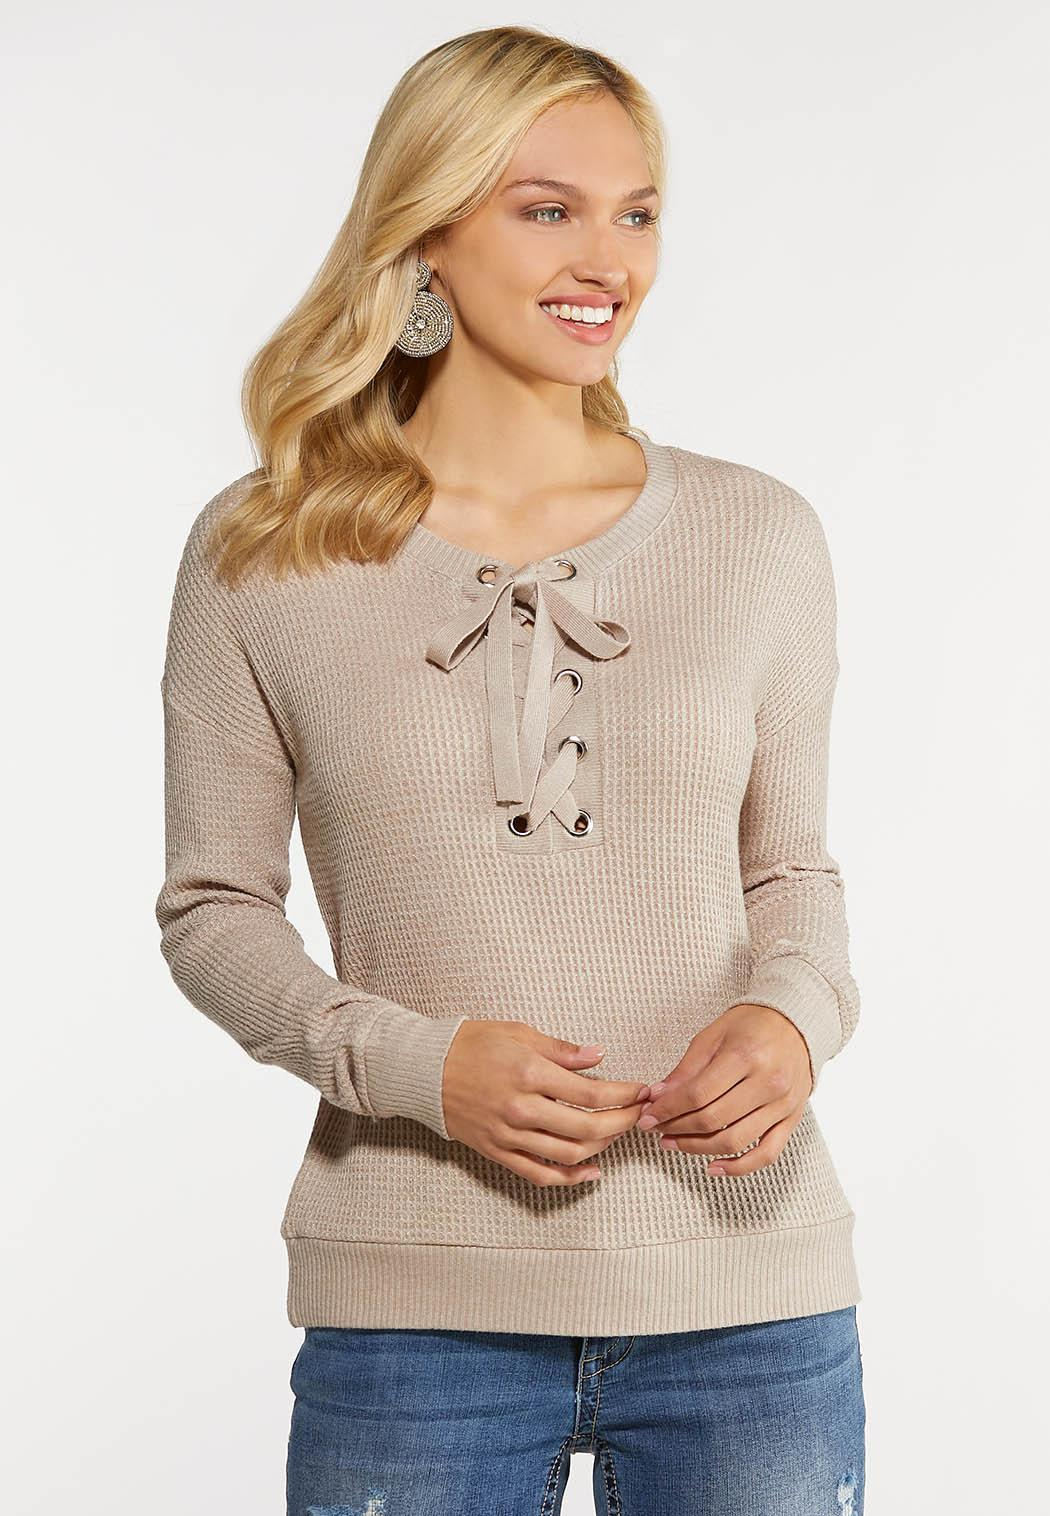 Lace Up Thermal Top